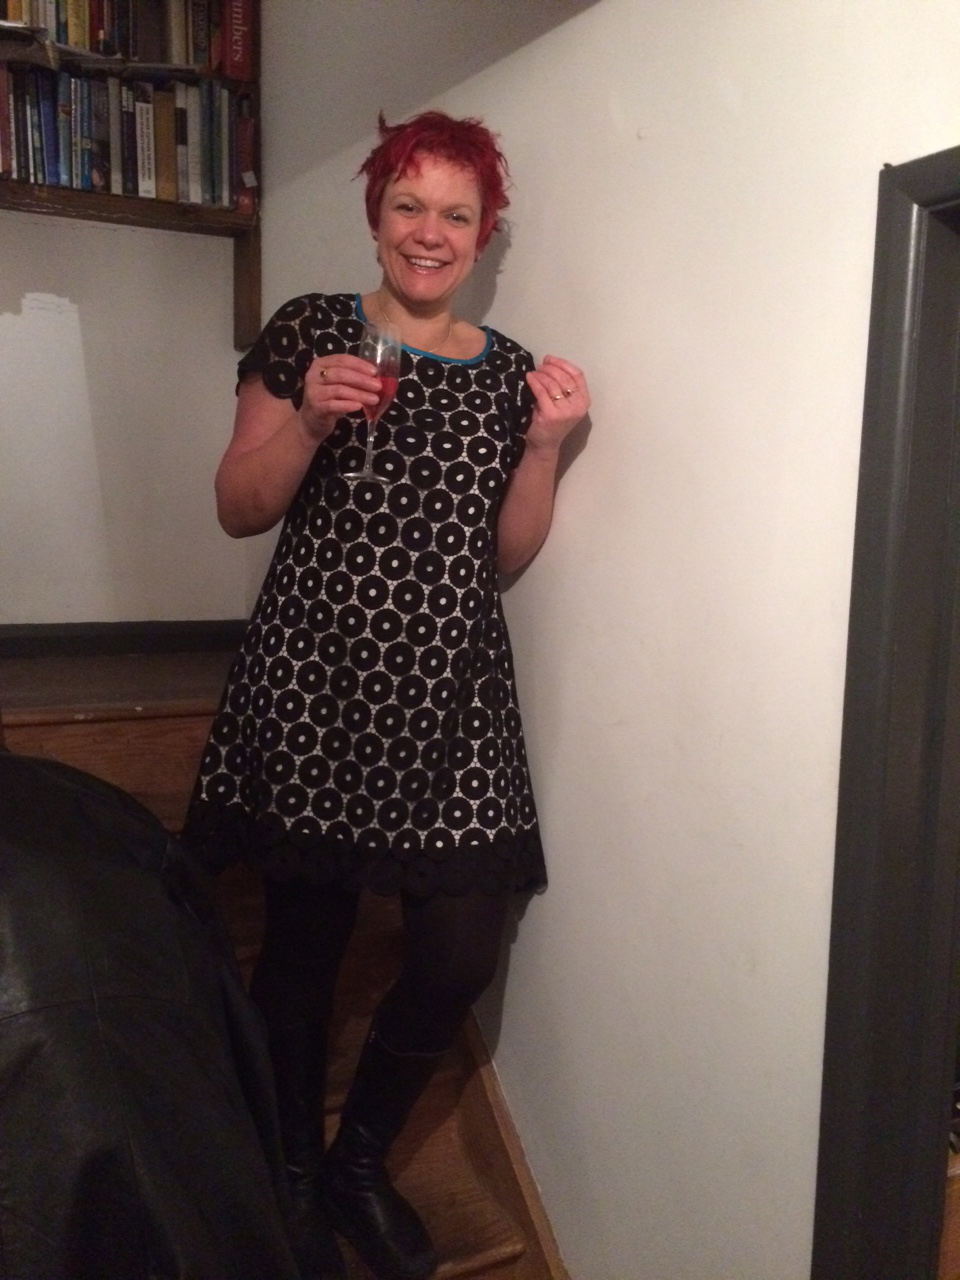 Bess wearing black circles lace dress holding a glass of bubbly